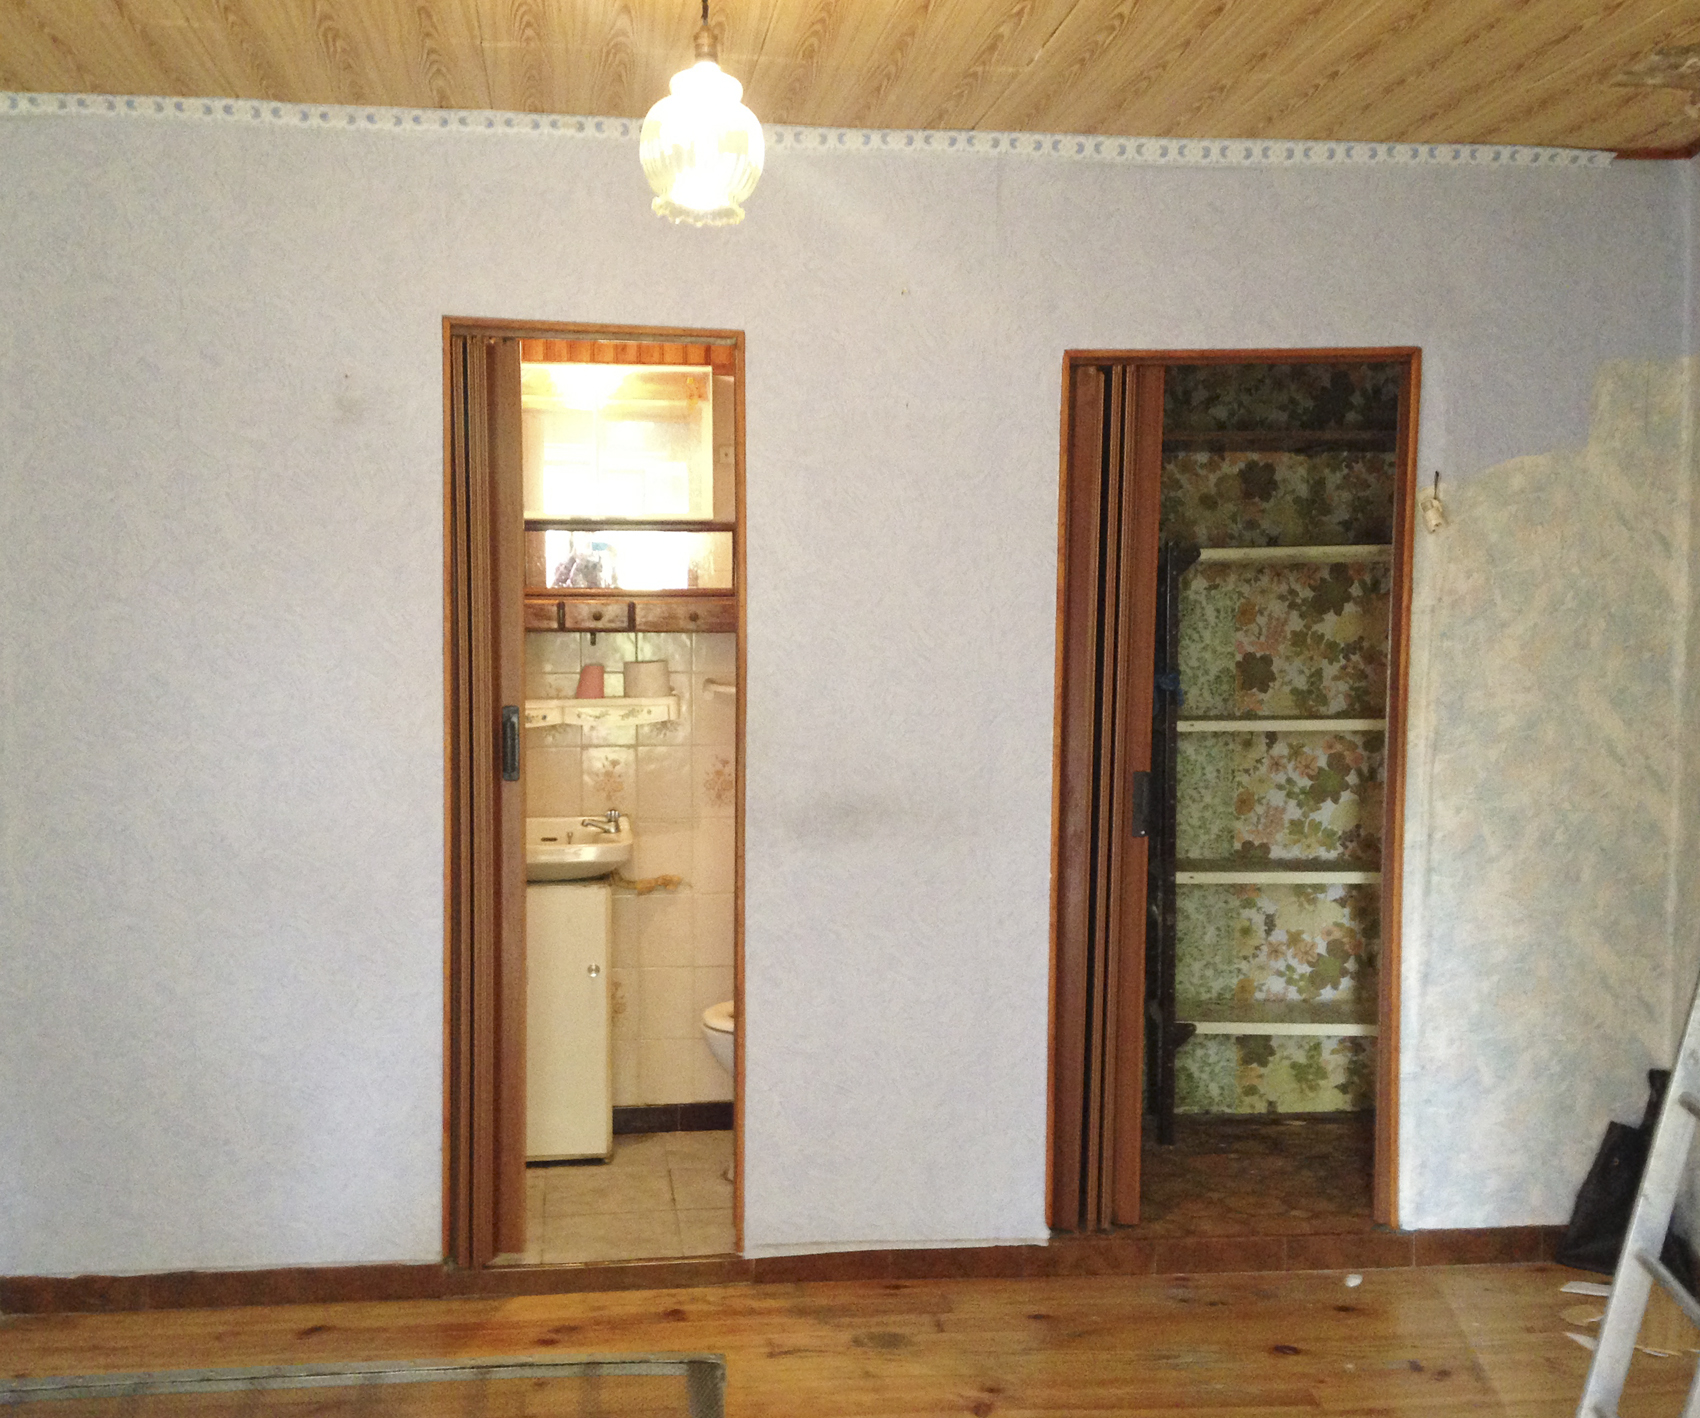 Our Renovation in Provence Part I: Demolition! - Curious Provence